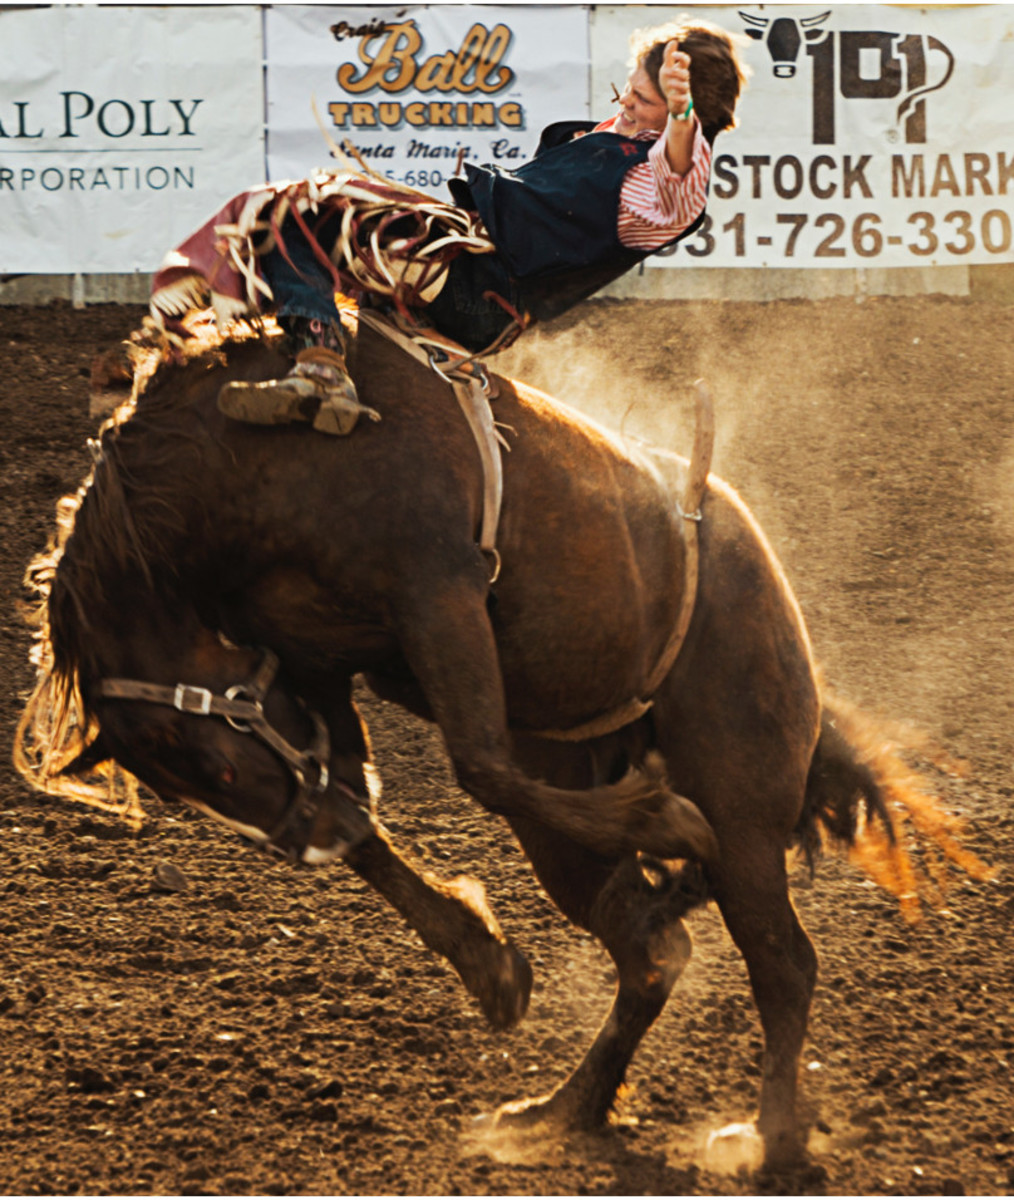 Bucking Horse: What to Do?